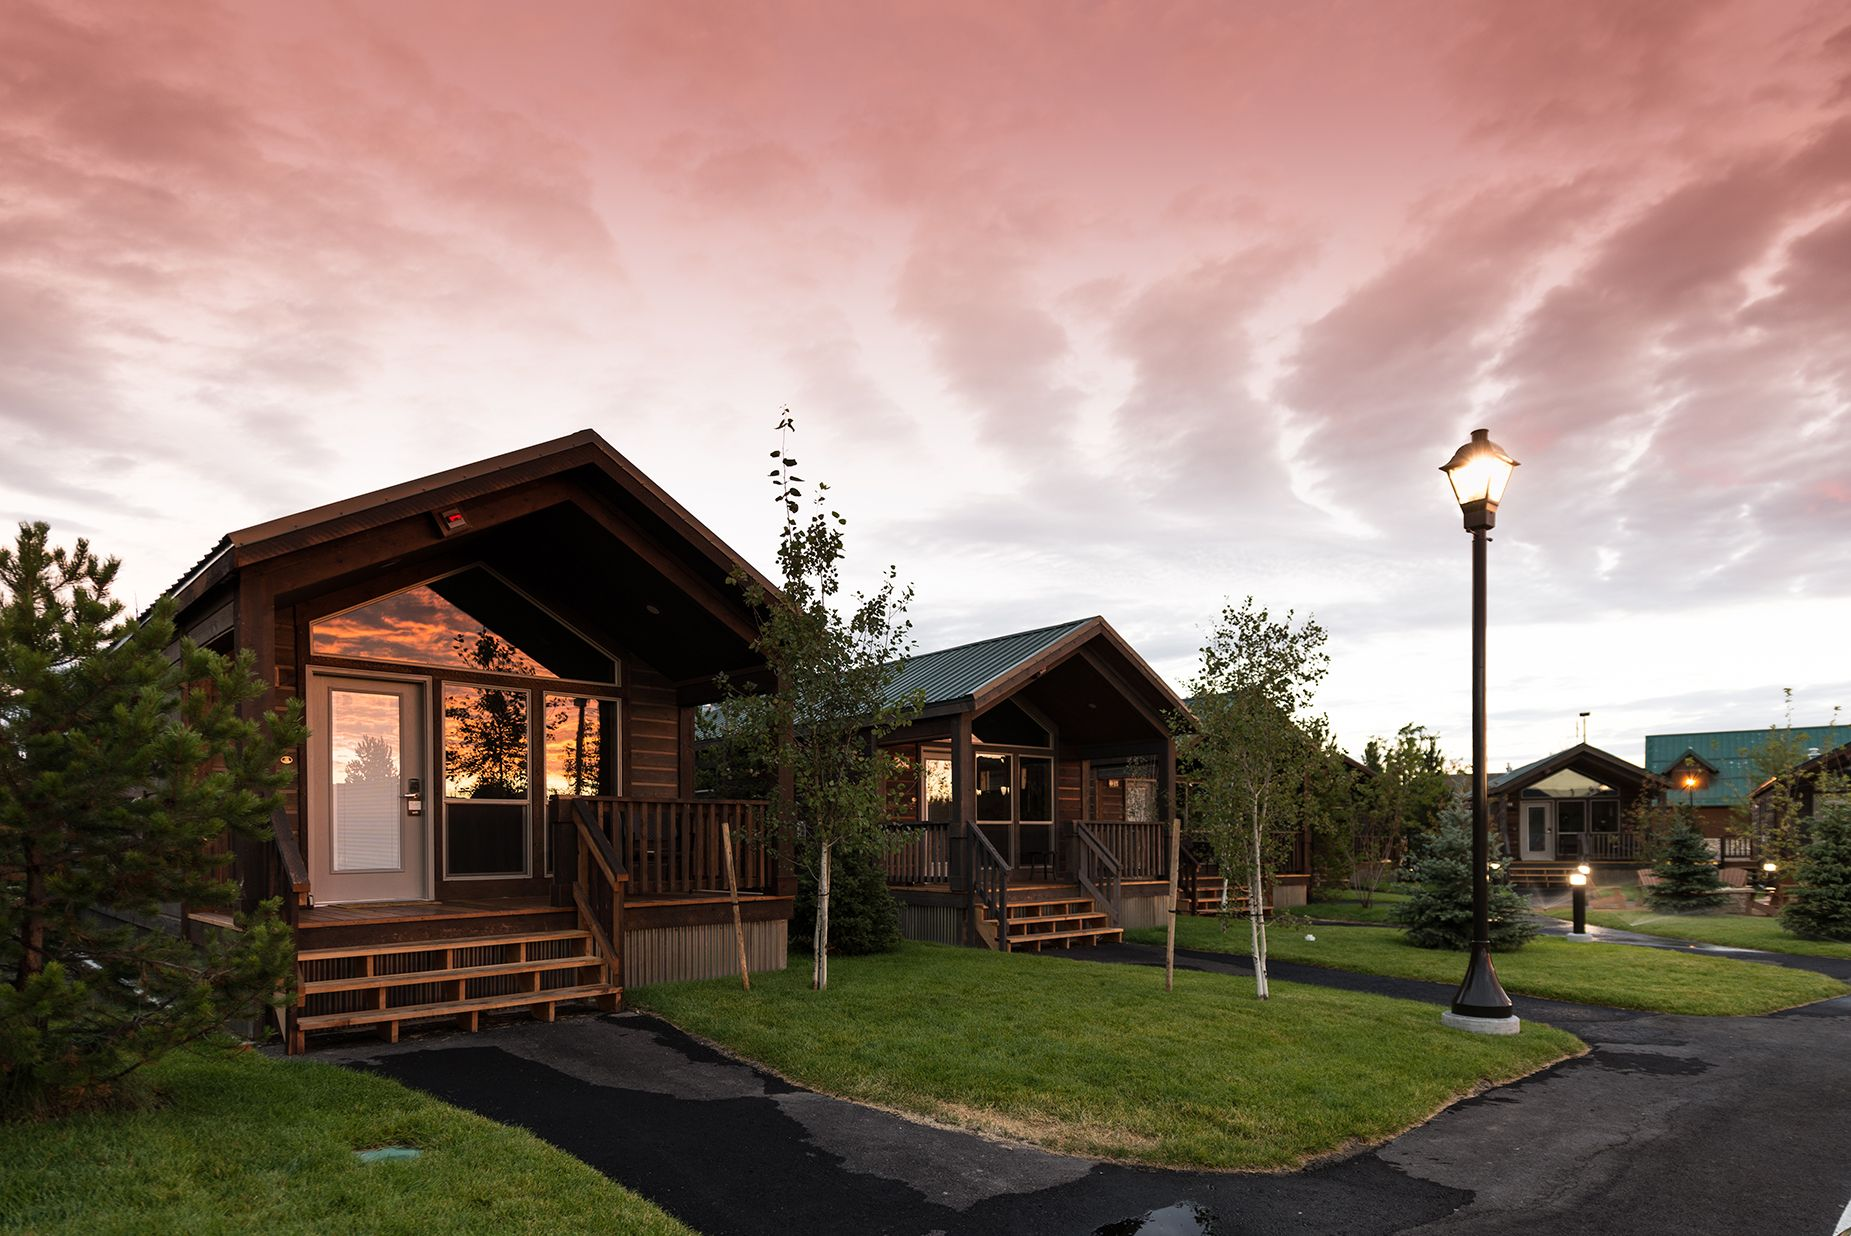 town north valley close yellowstone to vacation gardiner park homes entrance montana rentals at rental national is localinfobanner southwest nestled surroundings in breathtaking situated the cabin yosemite and cabins parks paradise